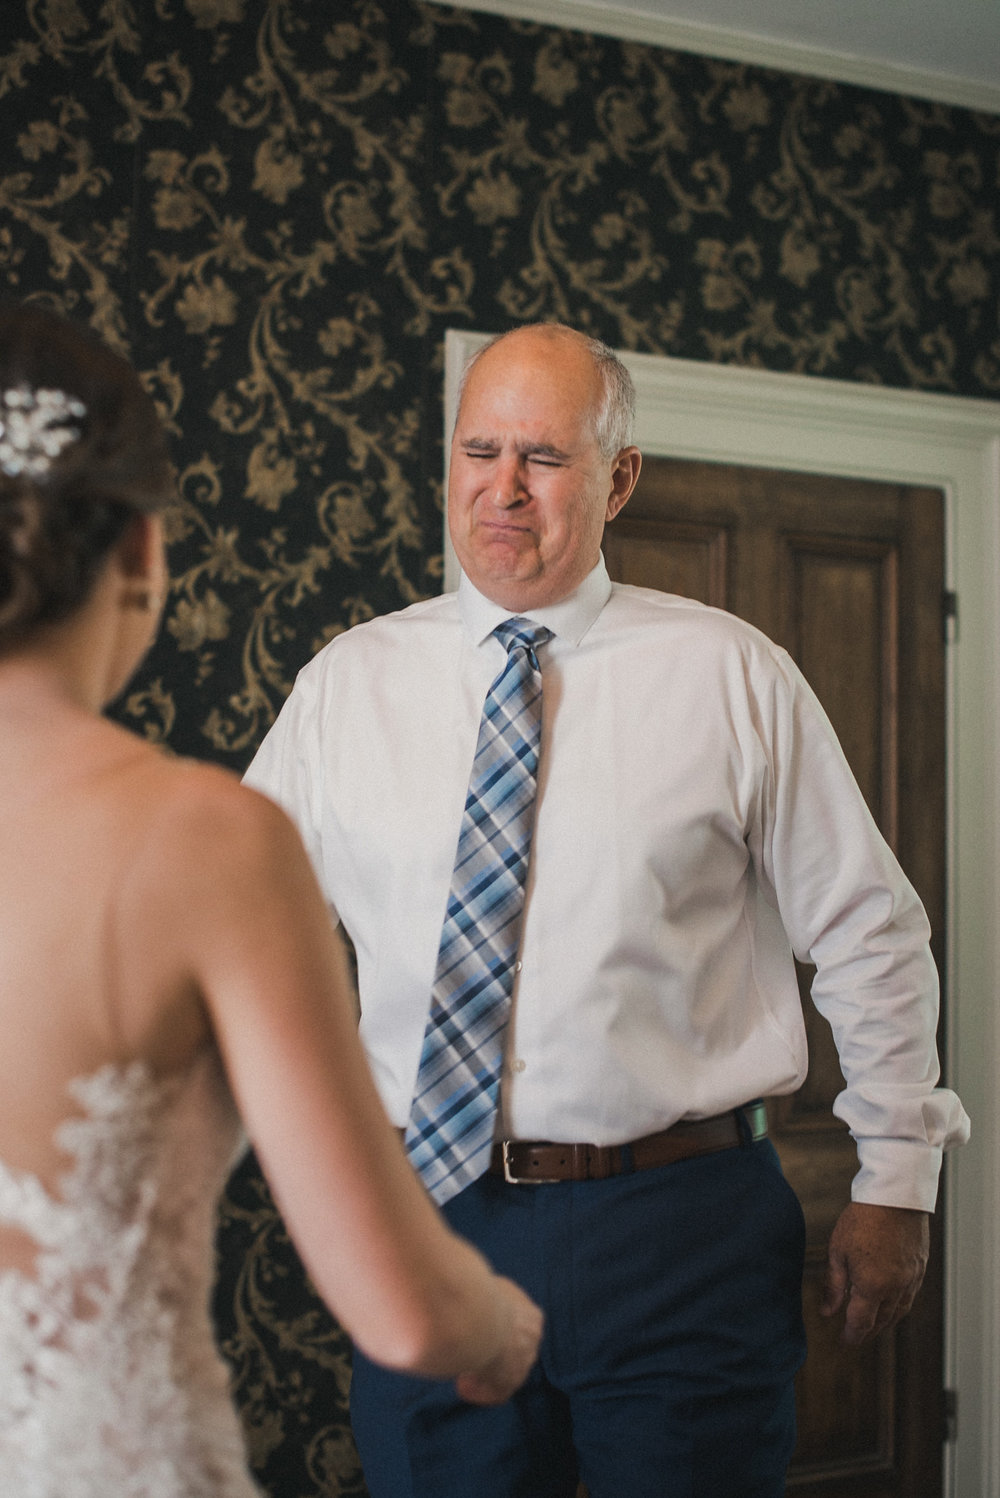 Father crying when seeing bride